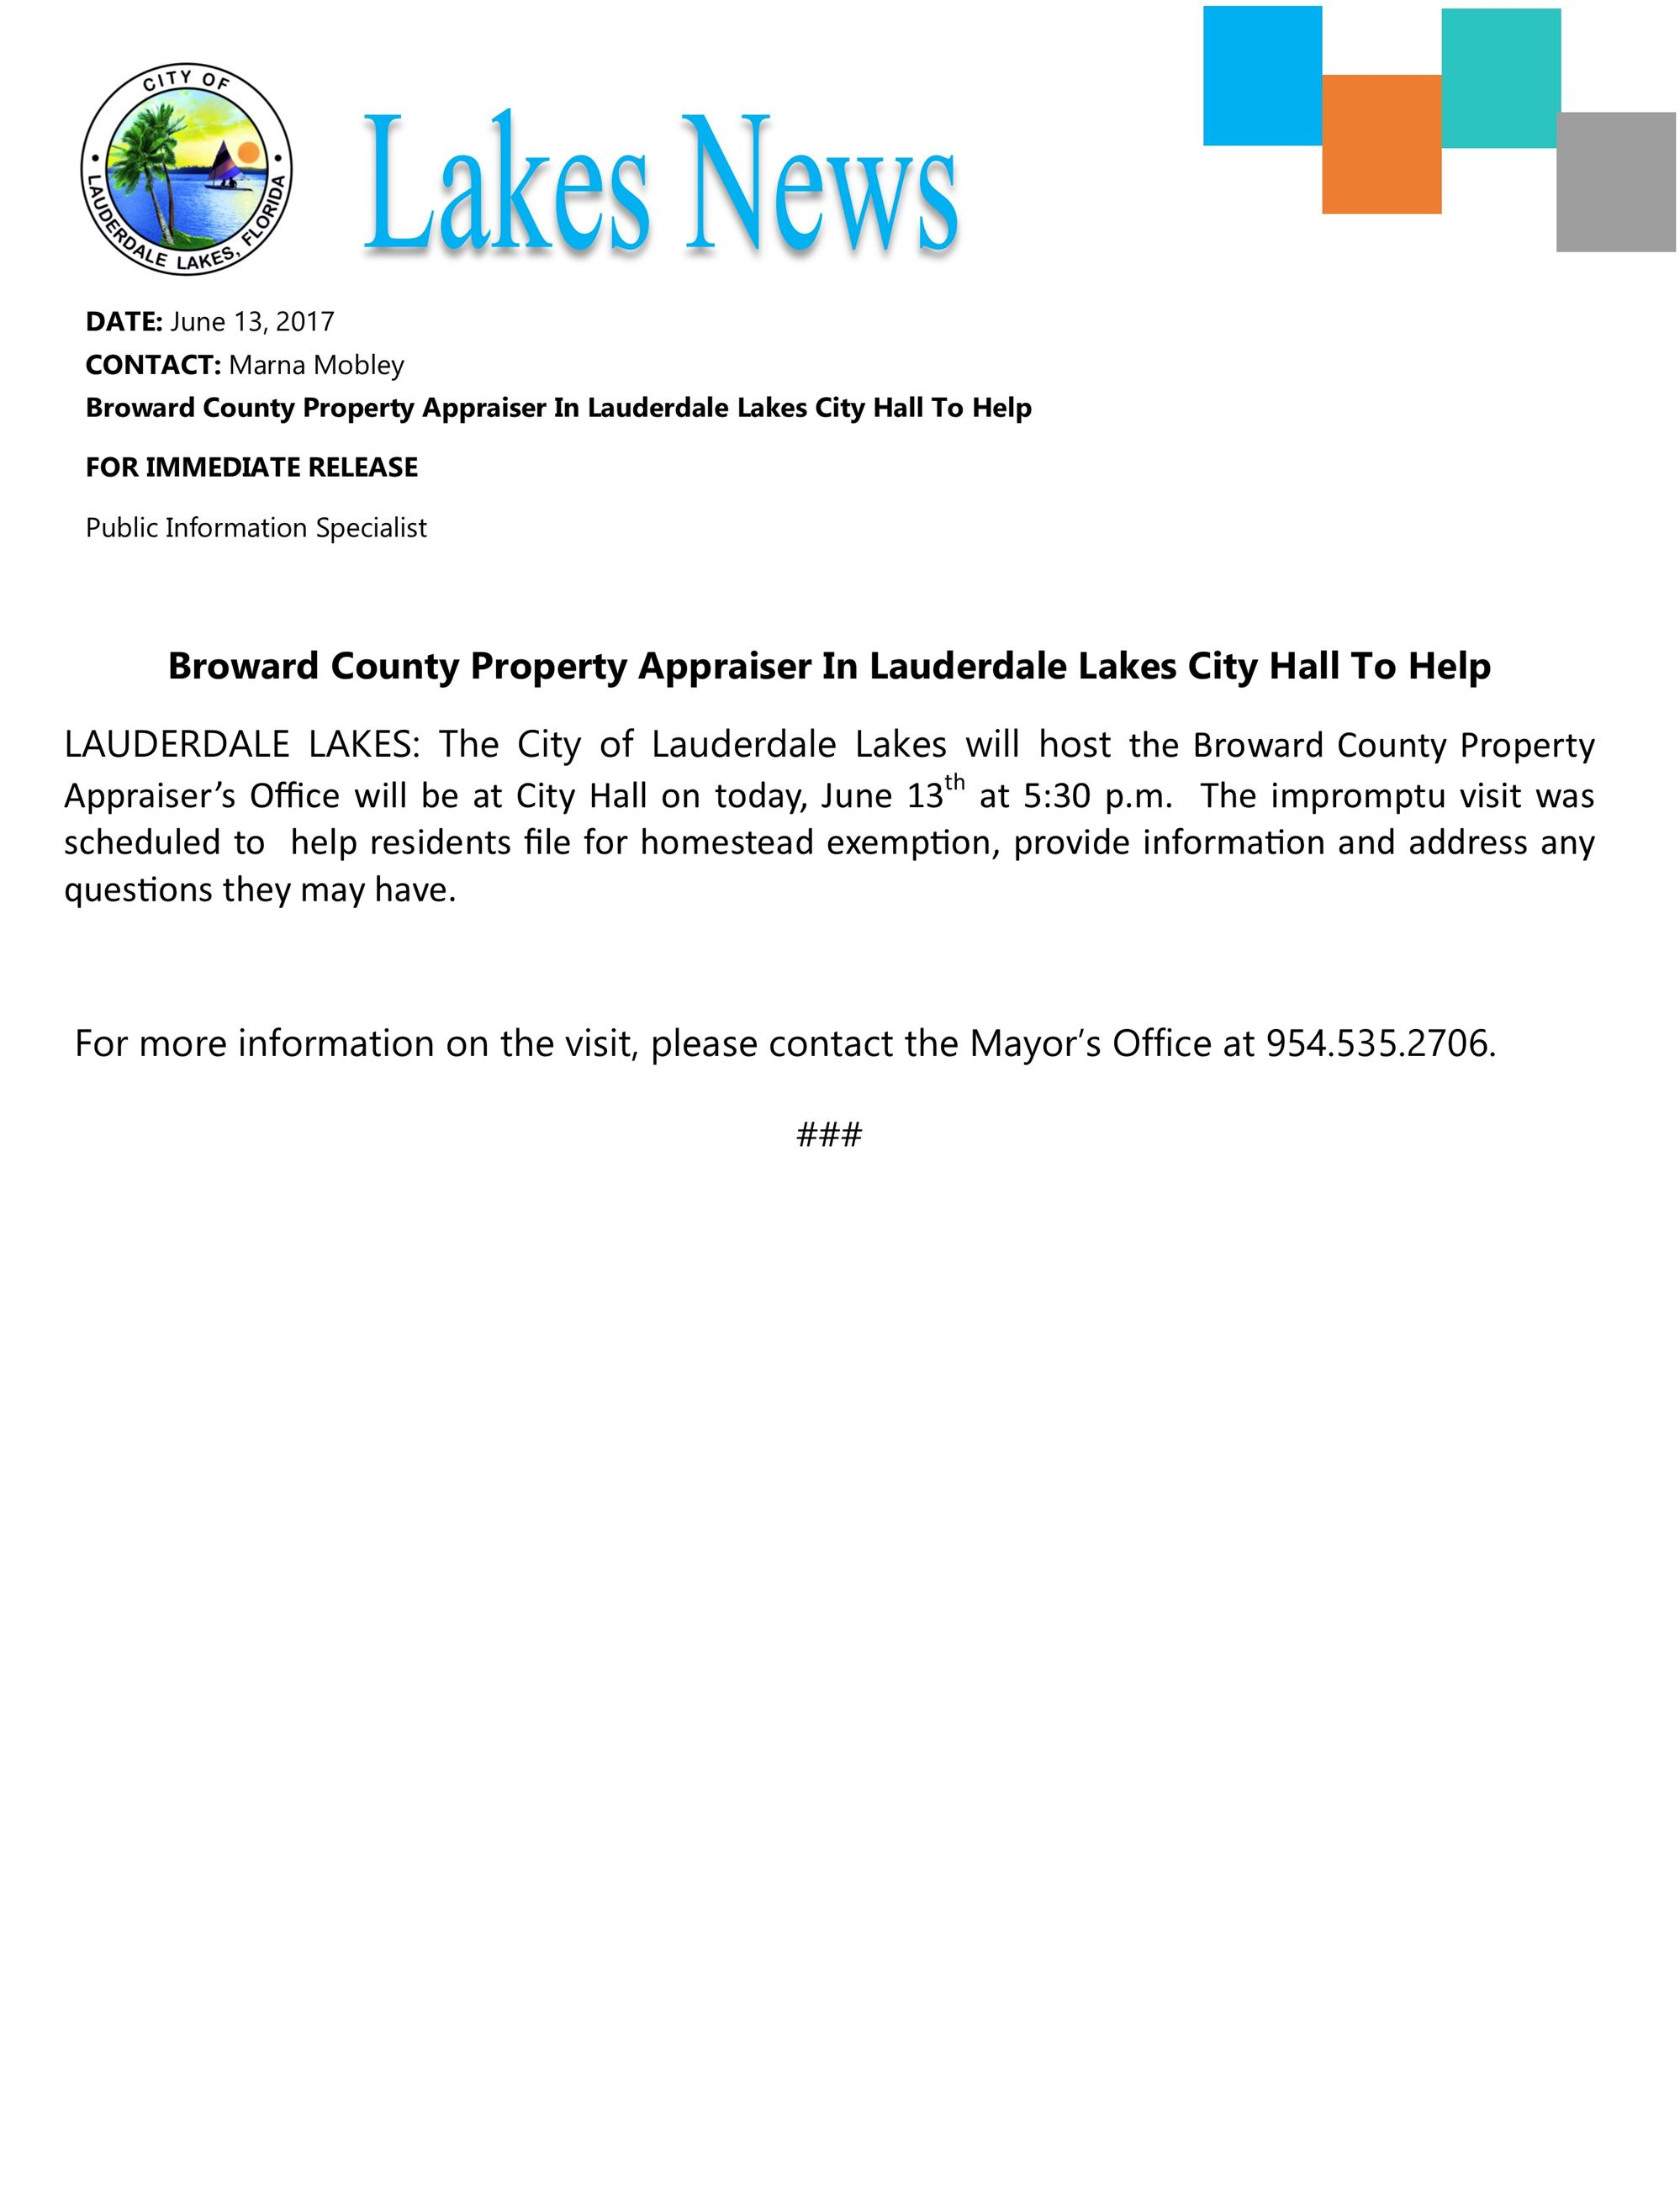 press. property appraiser 6.13.17